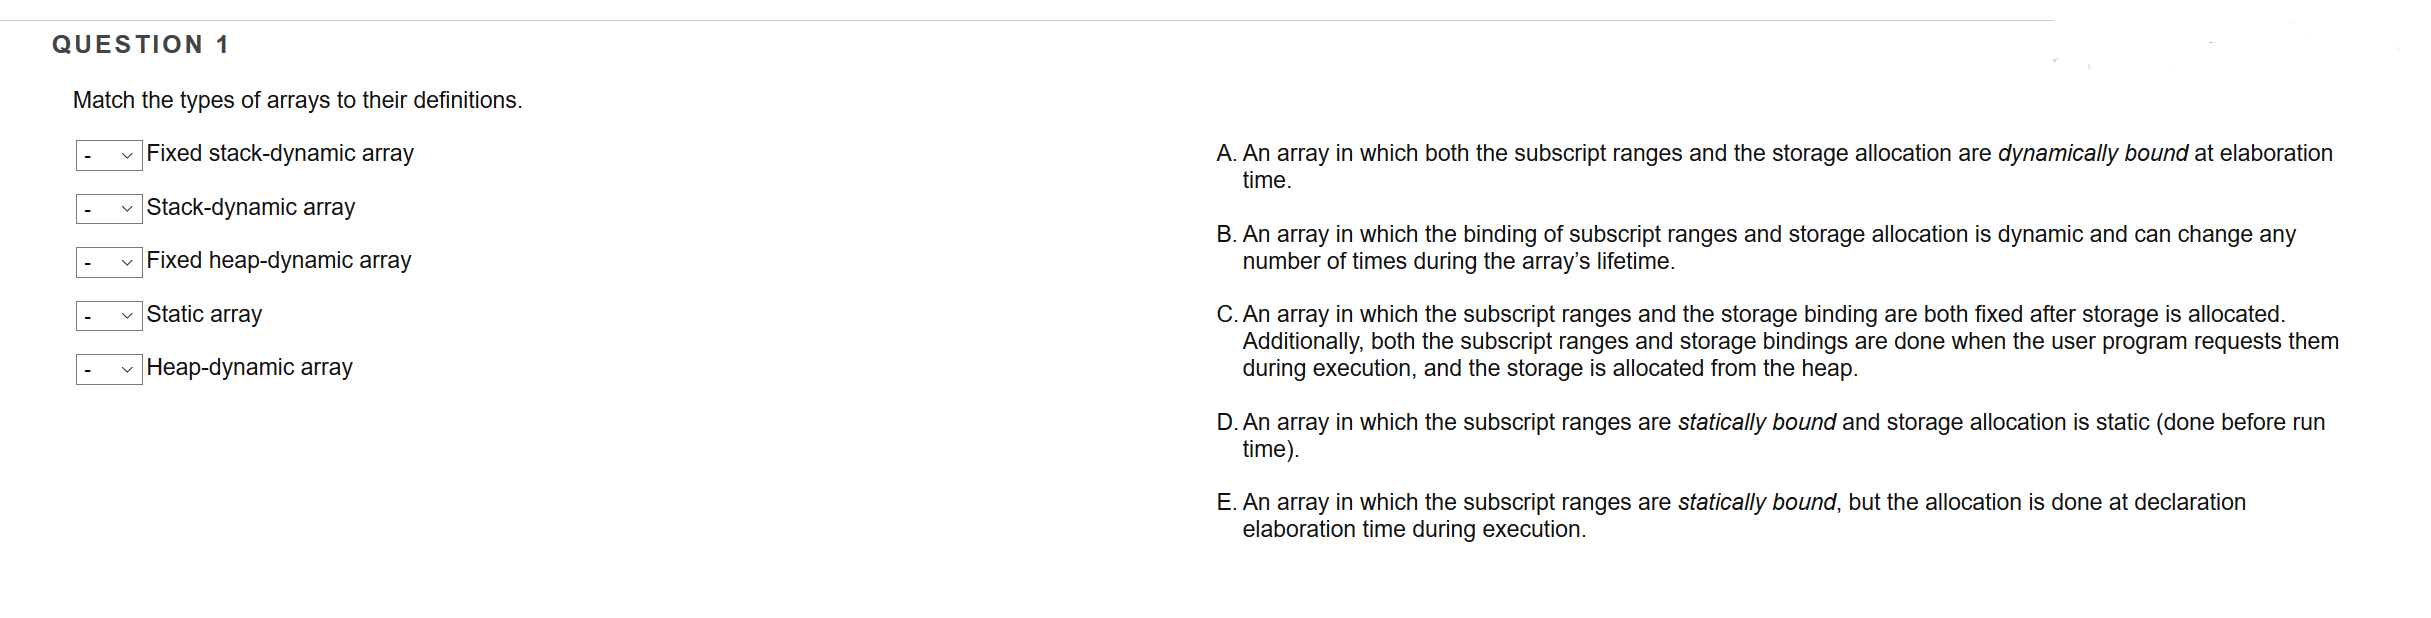 Solved: Match The Types Of Arrays To Their Definitions  Fi